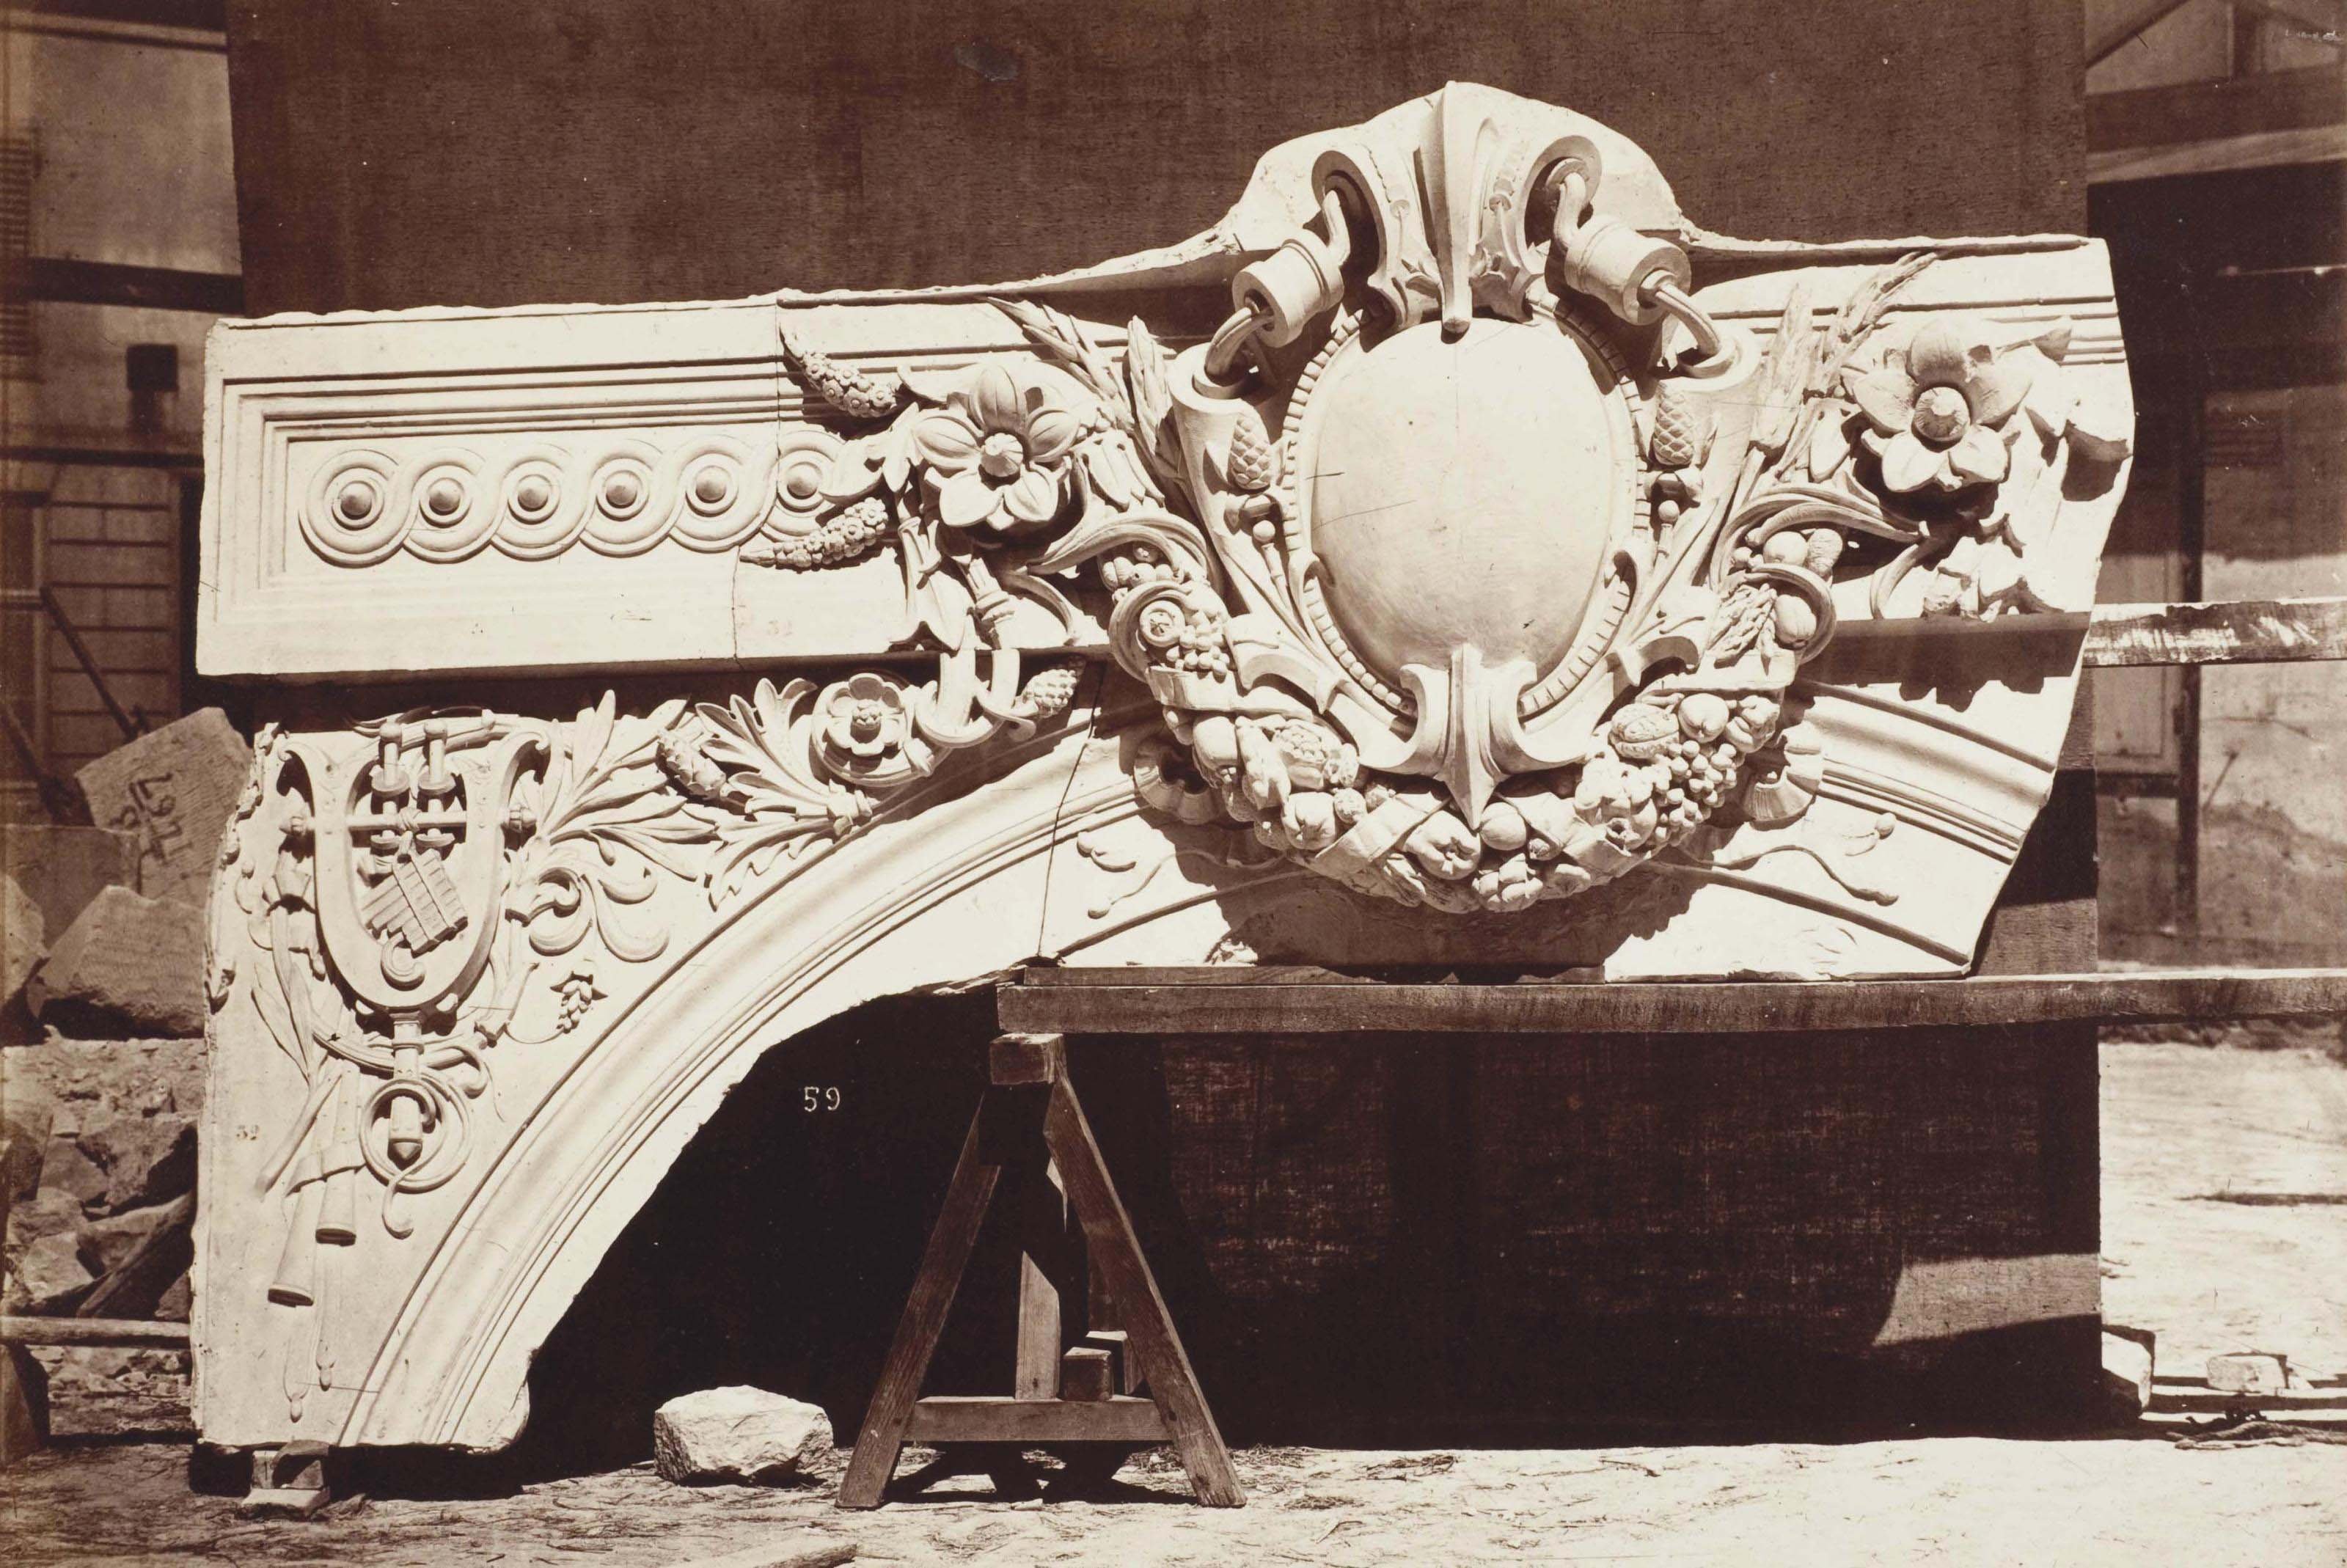 Le Nouvel Opéra de Paris, Sculpture Ornamentale, circa 1870